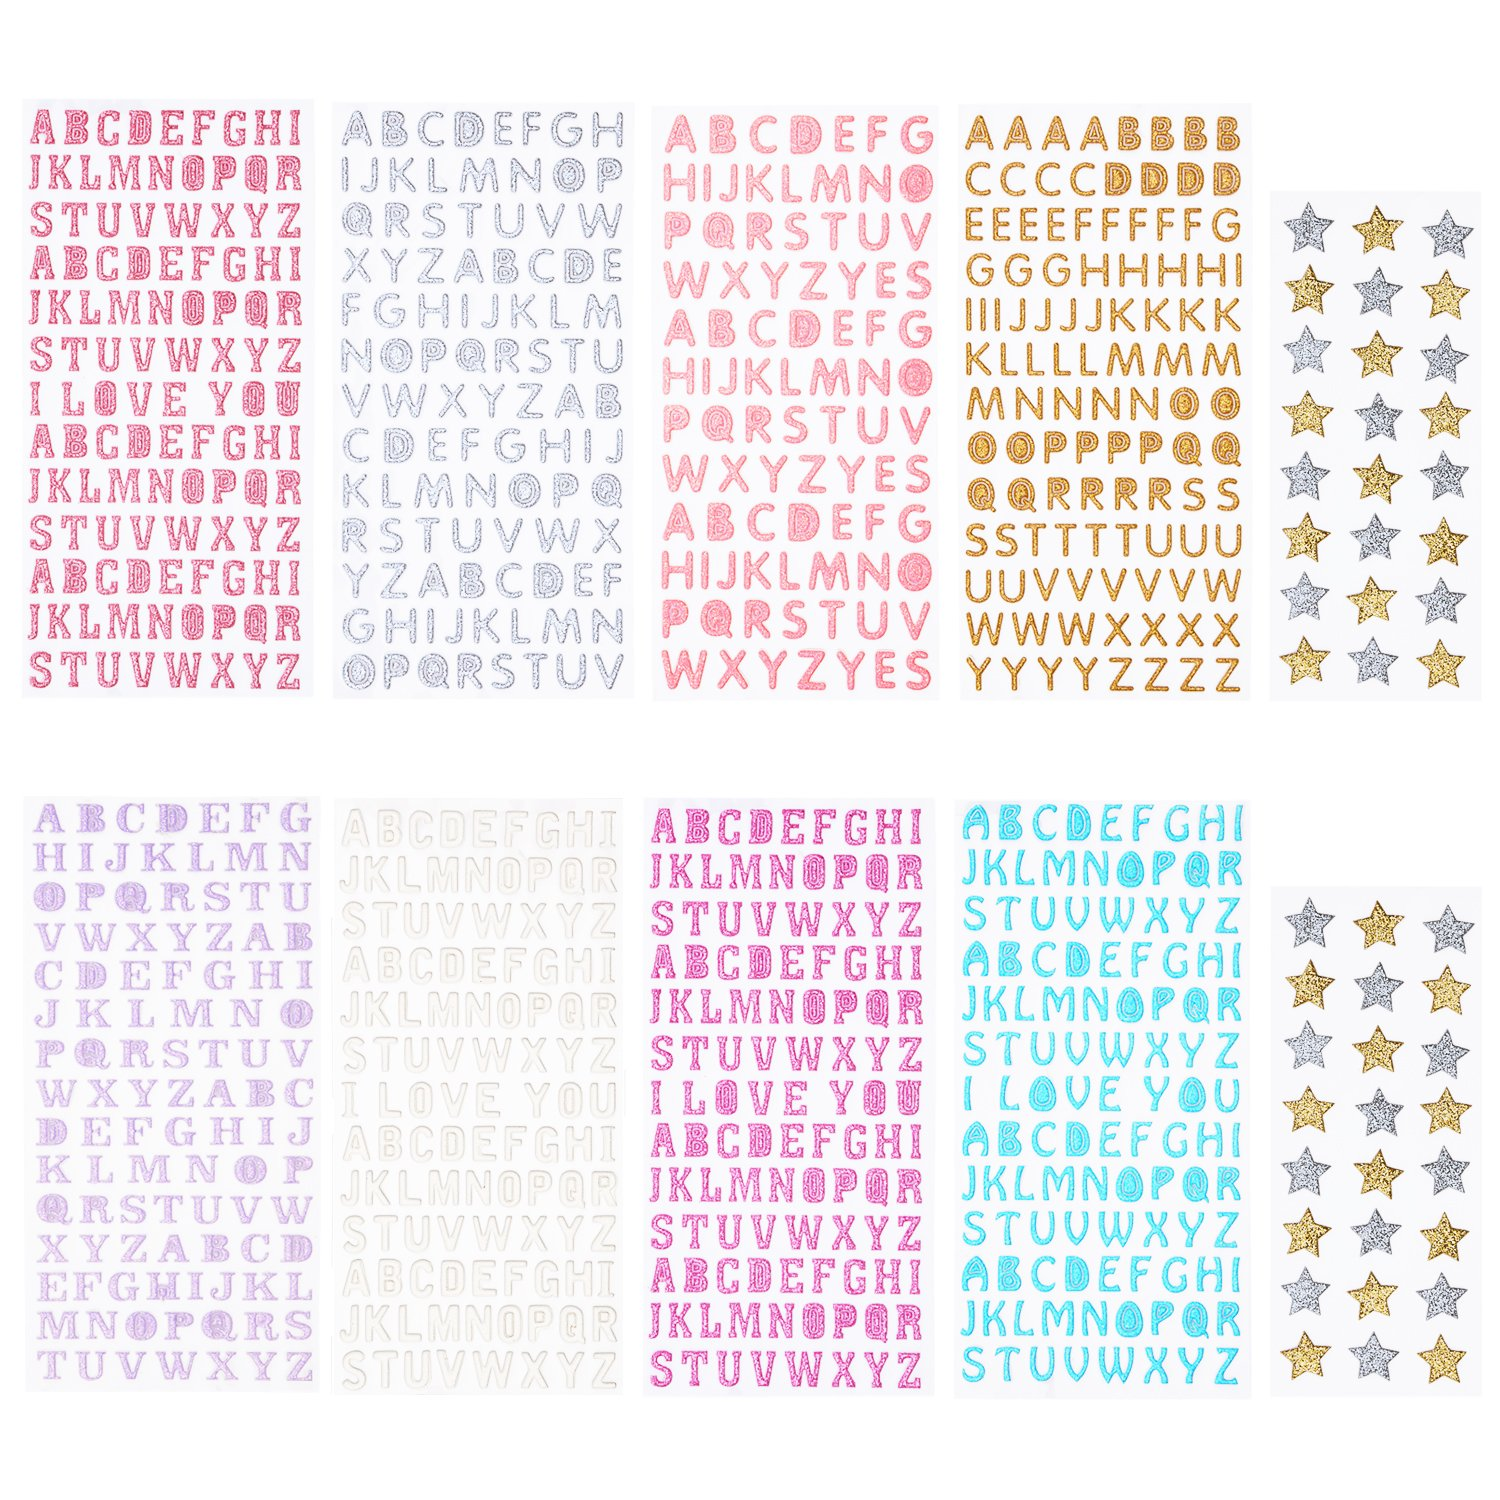 Sunmns Glitter Letter Gift Alphabet Sticker Self Adhesive Letters and Star Stickers, 10 Sheets SunmnDirect letter stickers 10